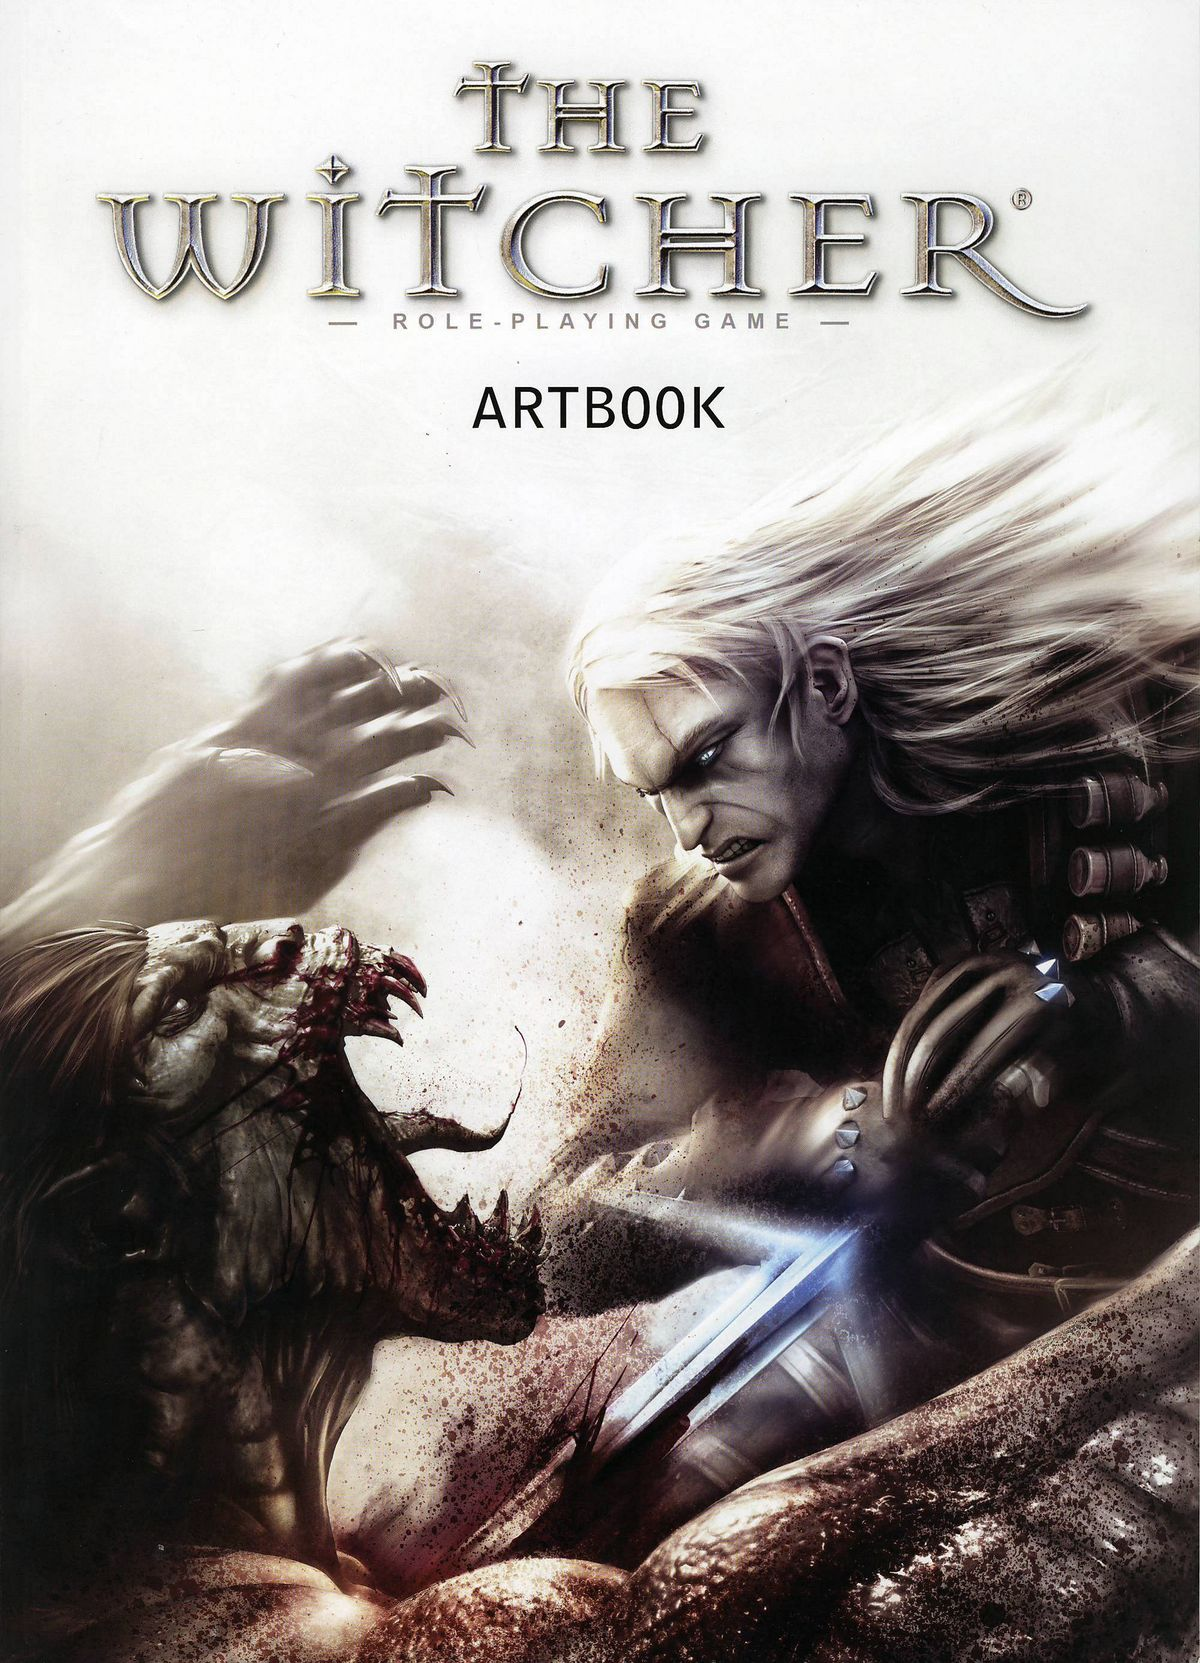 The Witcher Artbook The Official Witcher Wiki